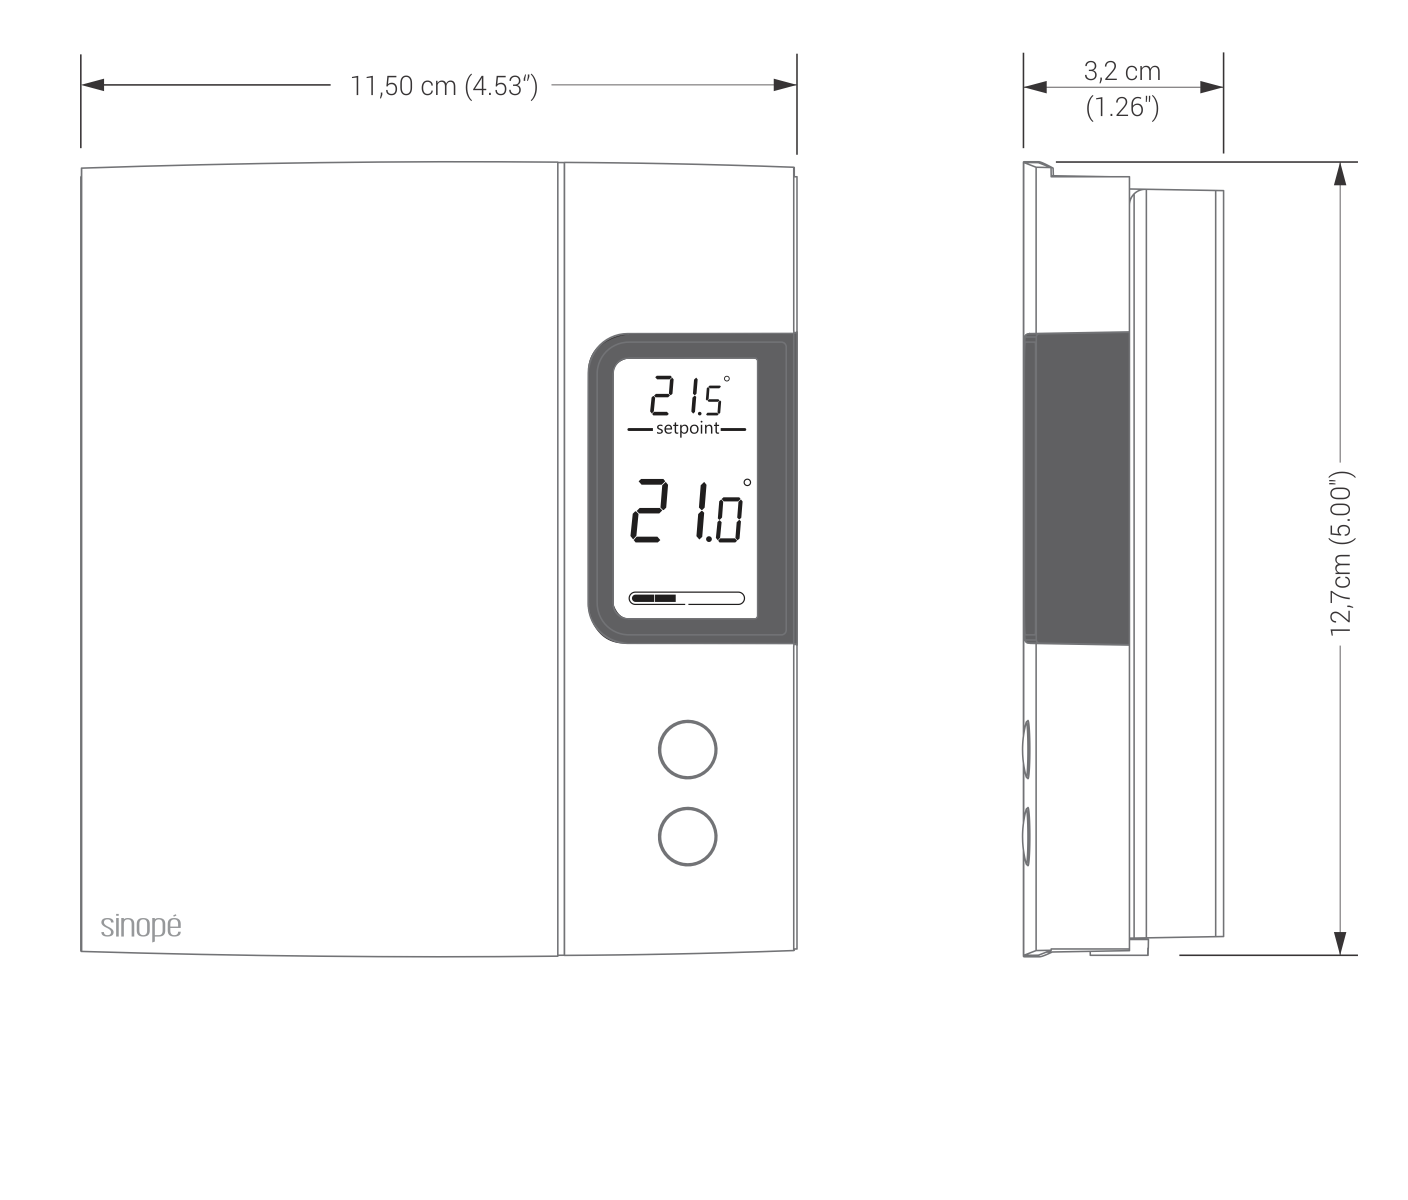 Non Programmable Thermostat For Electric Heating 4000 W Sinop Radiant Ceiling Heat Wire Diagram Th1120 Dessin Technique